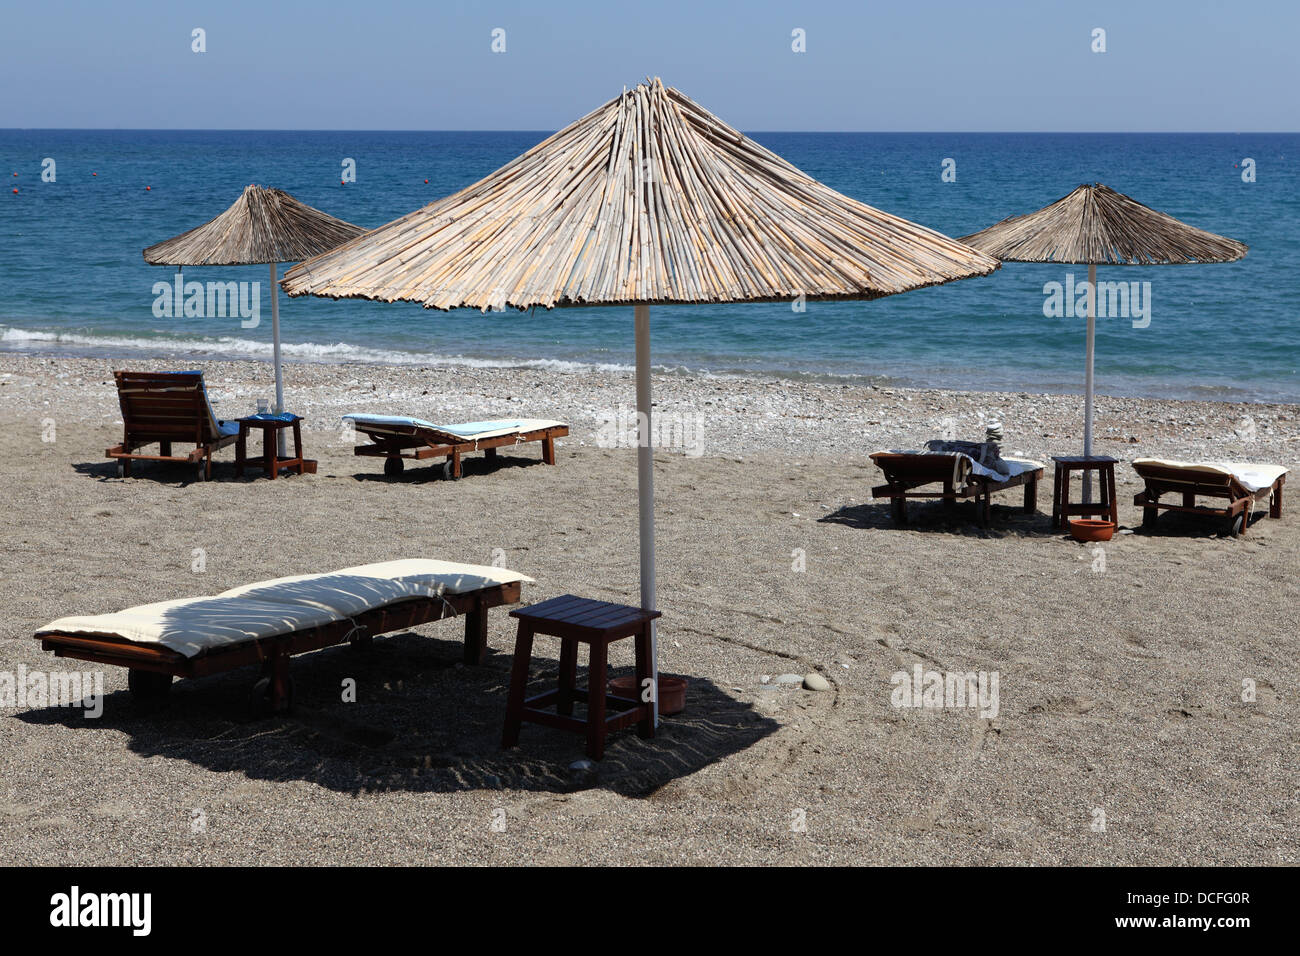 Sunloungers with sunshades at Lardos Beach near Lindos, Rhodes, Greece. - Stock Image